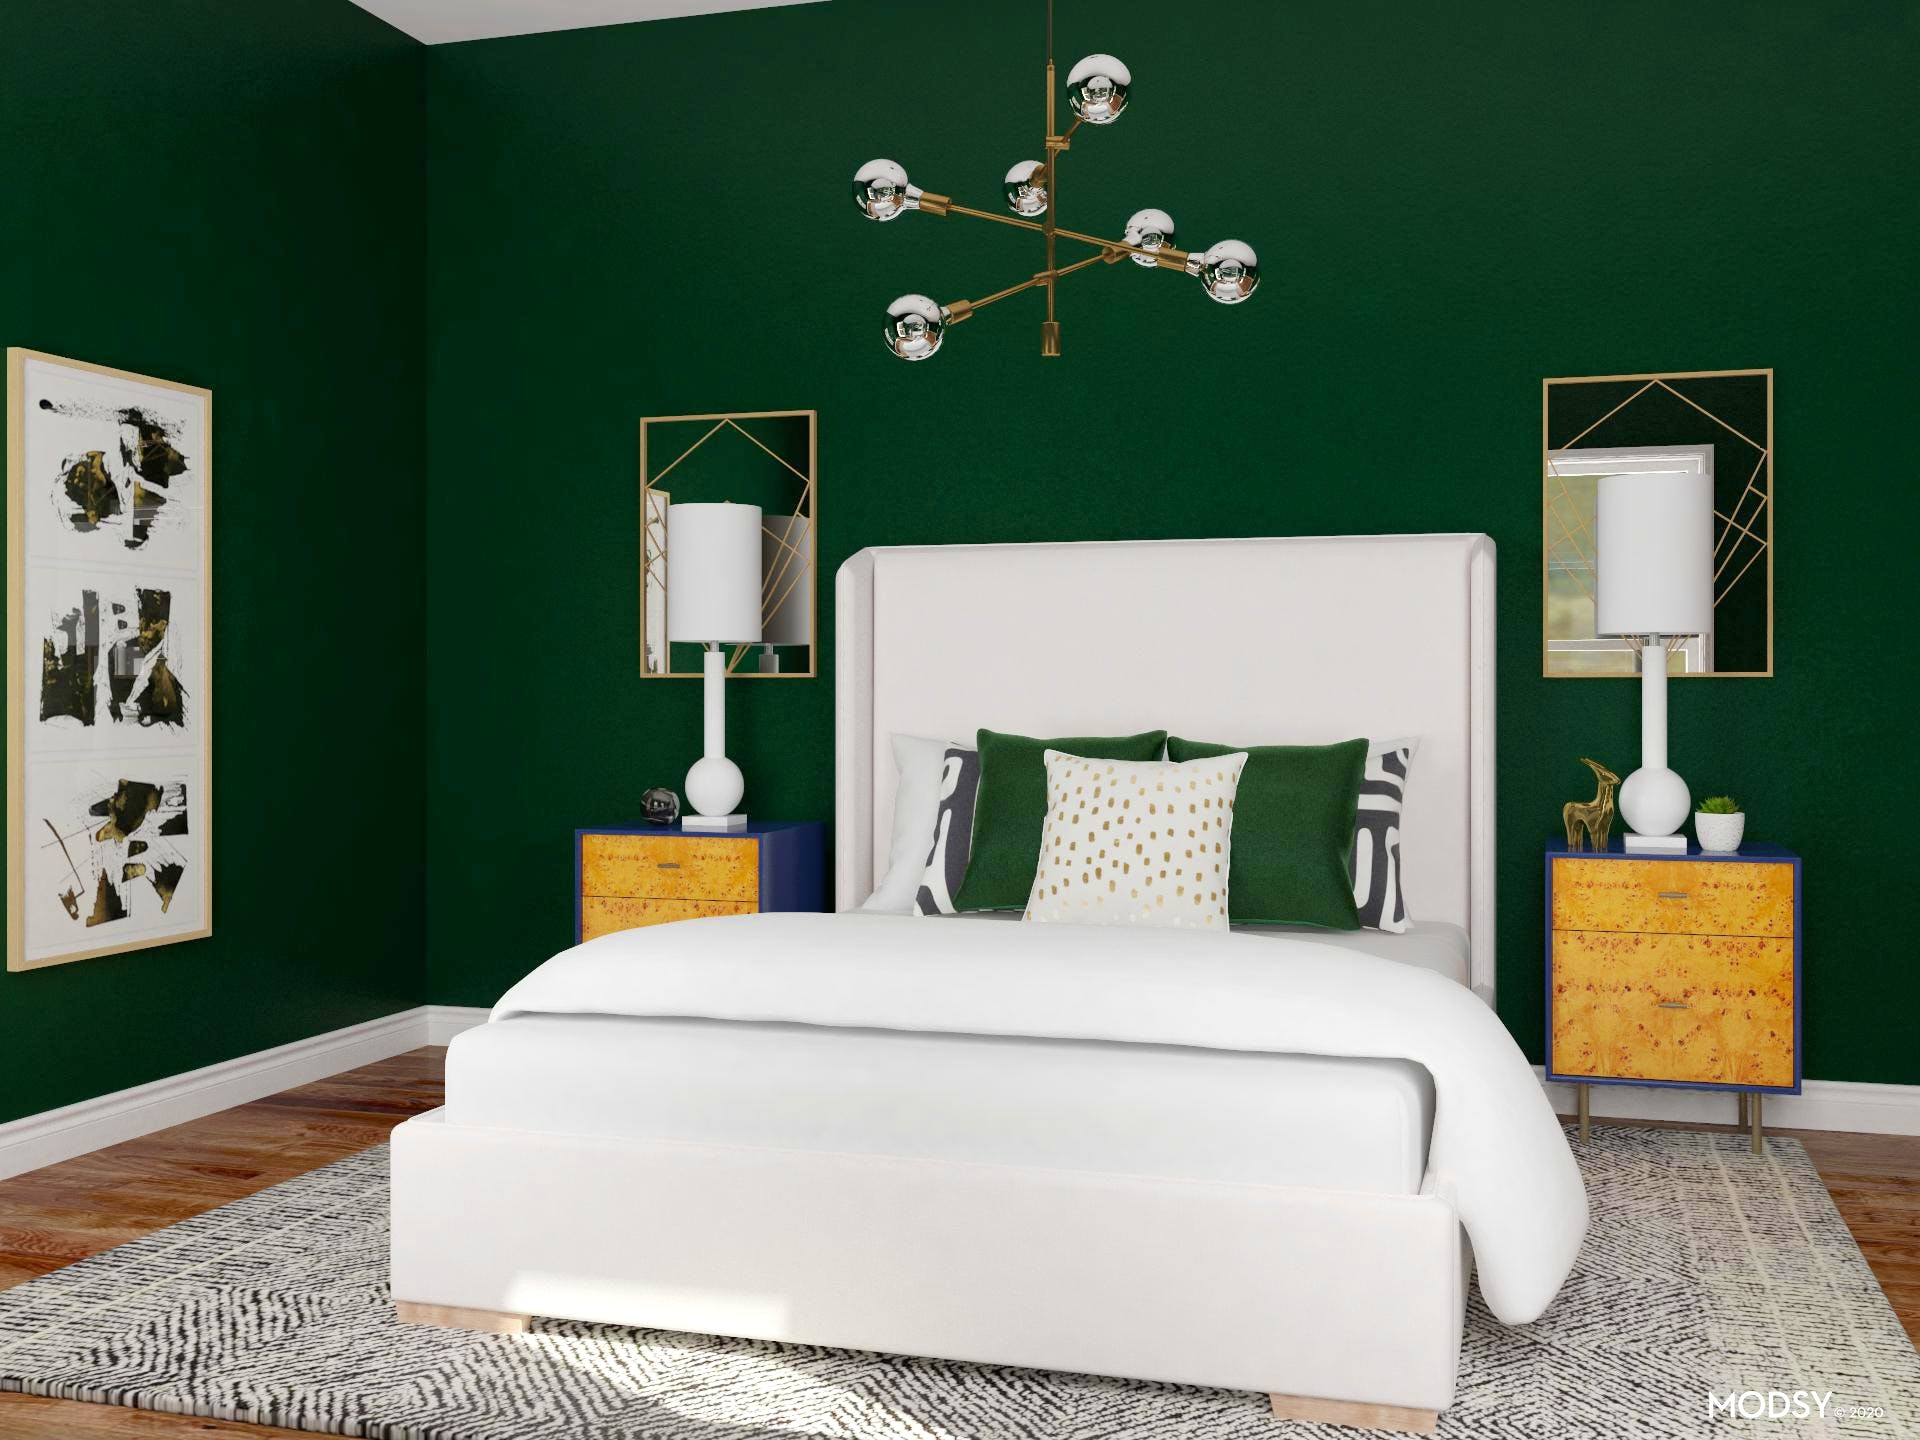 Glam Bedroom in Deep Emerald Shade